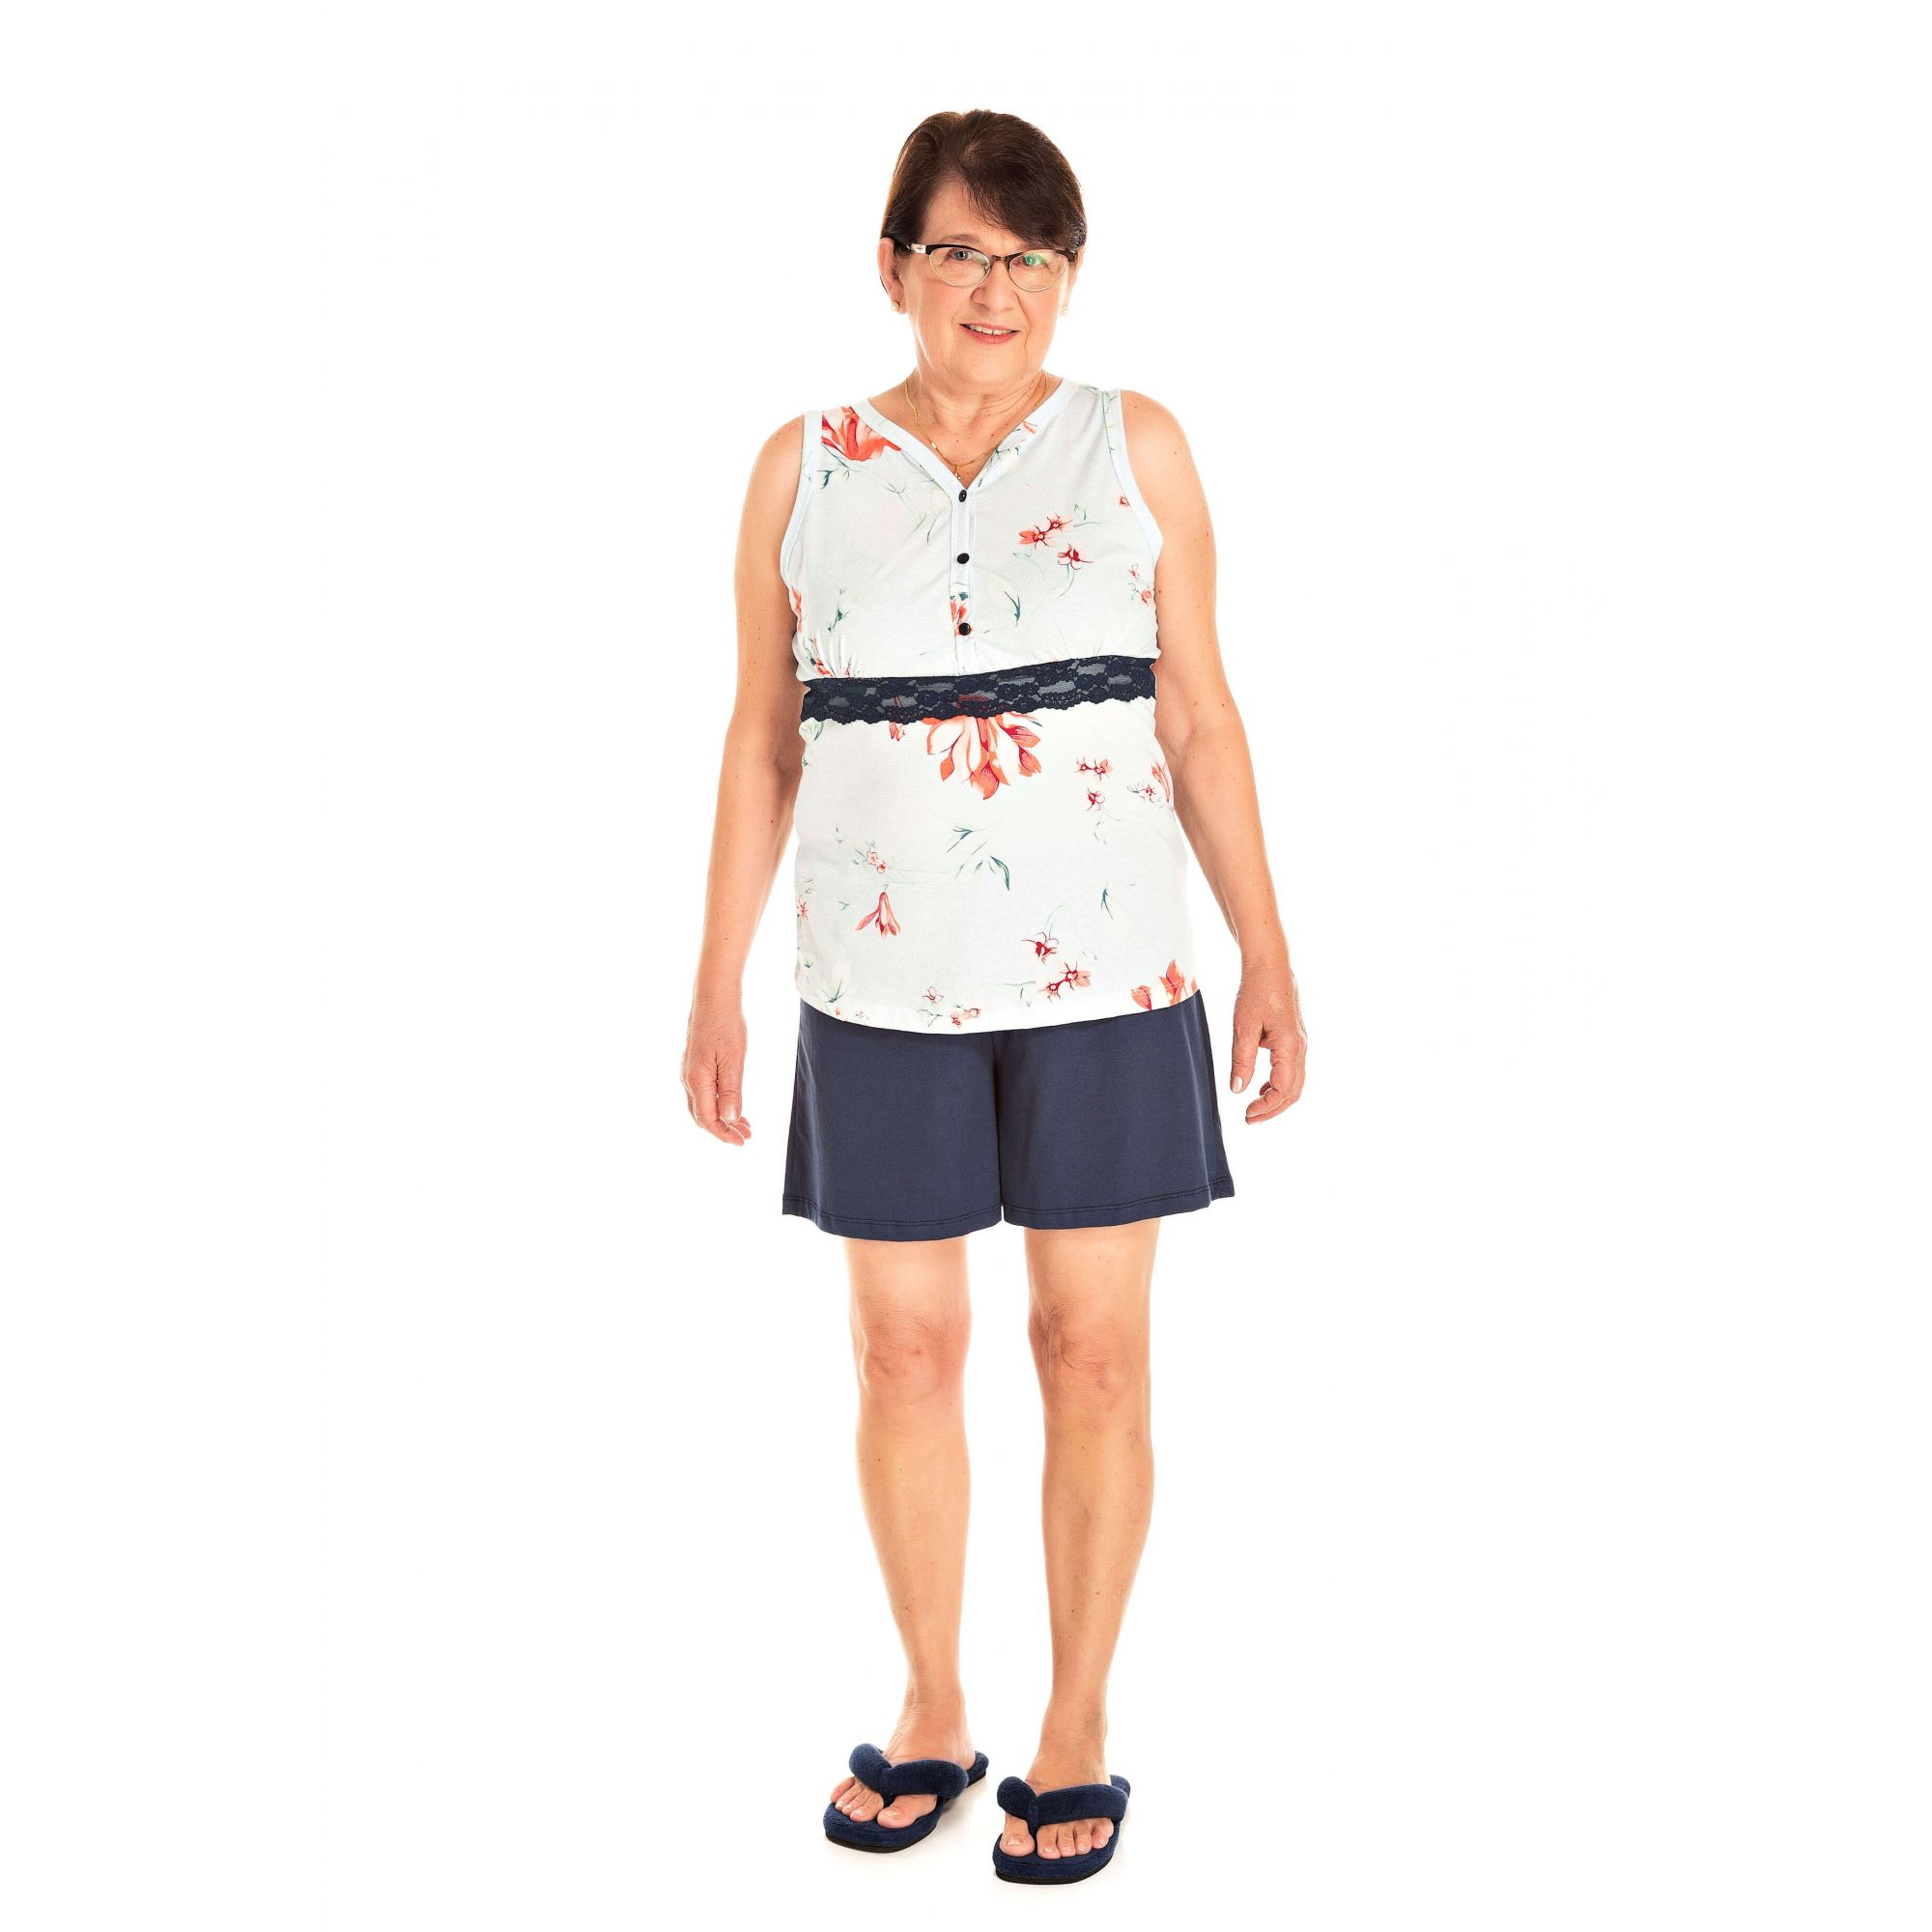 111/A - Short Doll Adulto Feminino Floral Com Renda